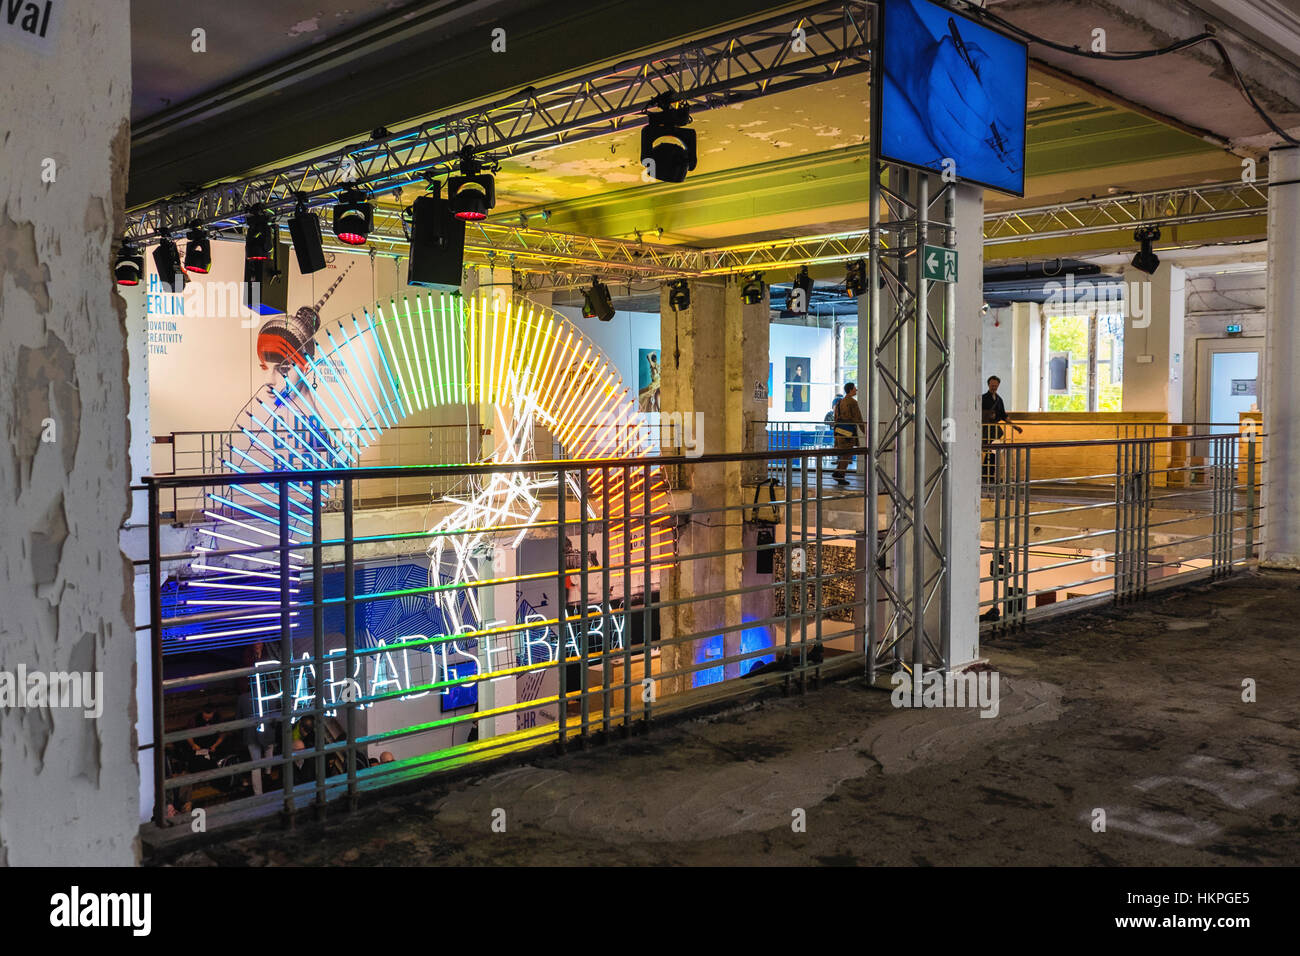 Berlin Mitte. Paradise Baby Neon sign at C-HR Innovation and Creativity Festival in  historic Kaufhaus Jahndorf - Stock Image